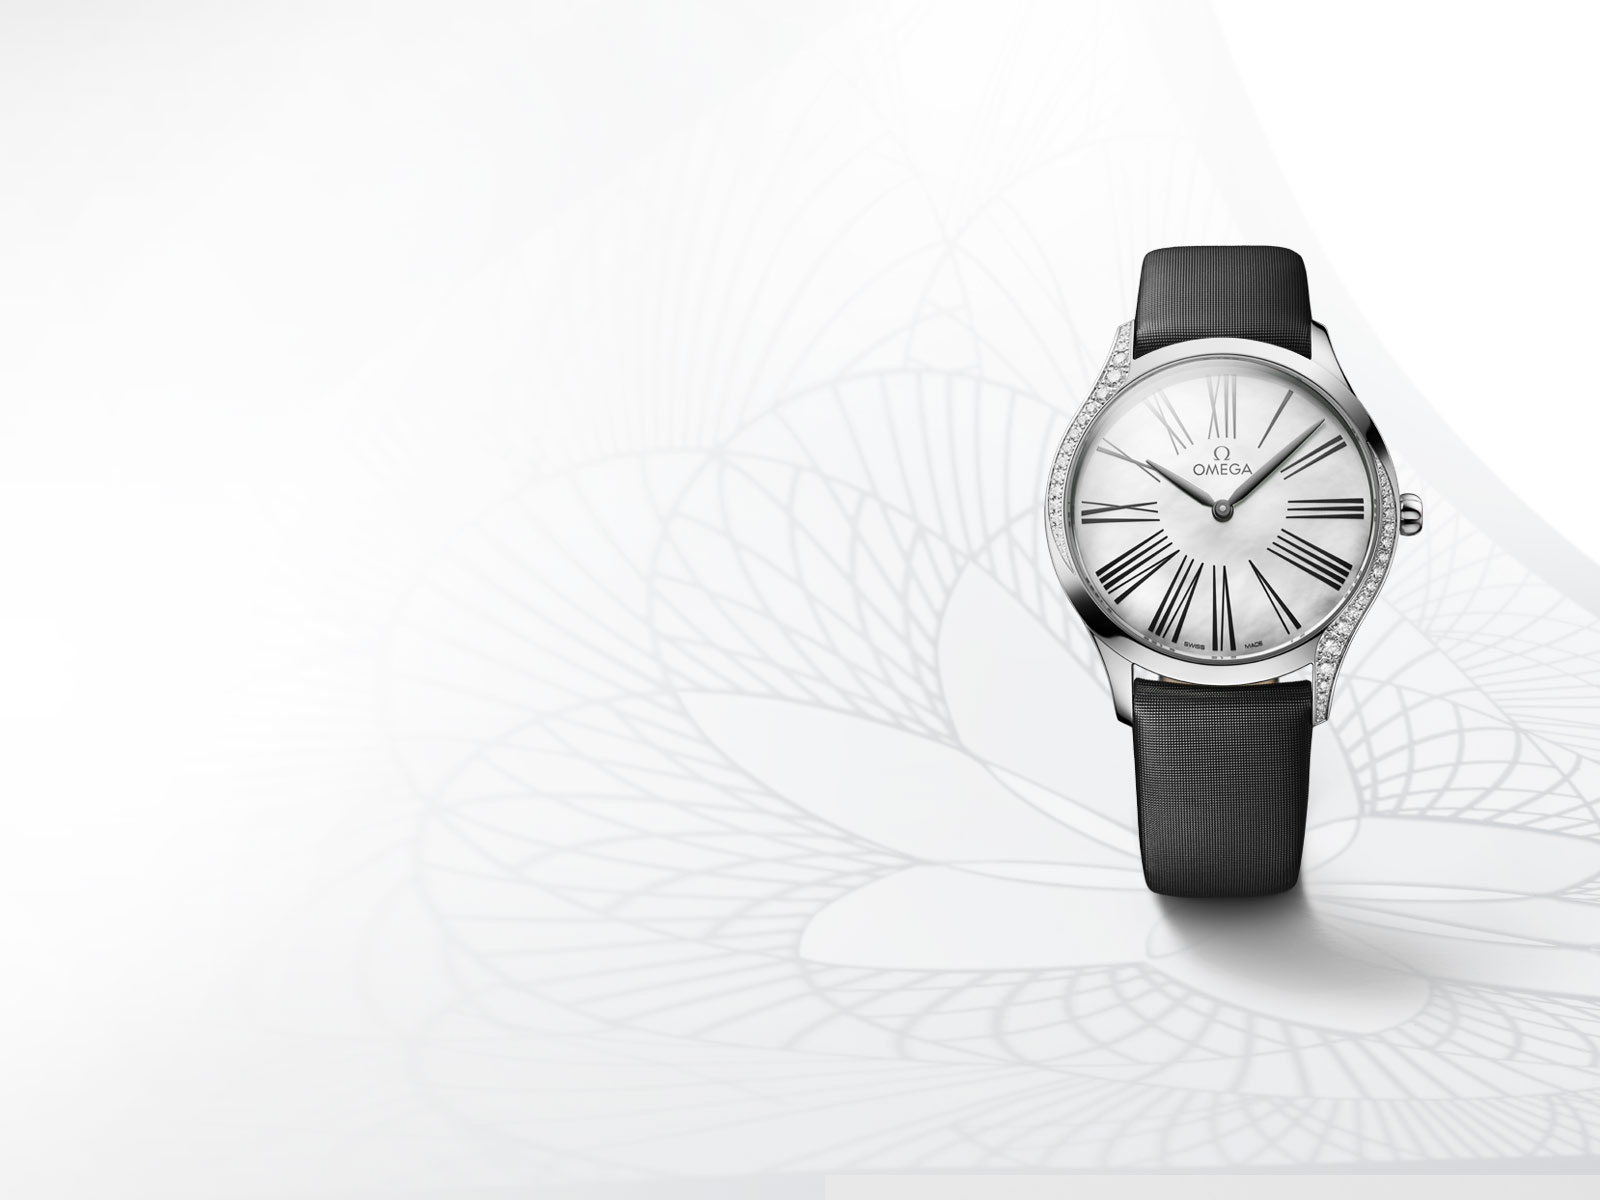 The De Ville Trésor watch in stainless steel with diamonds and black fabric strap